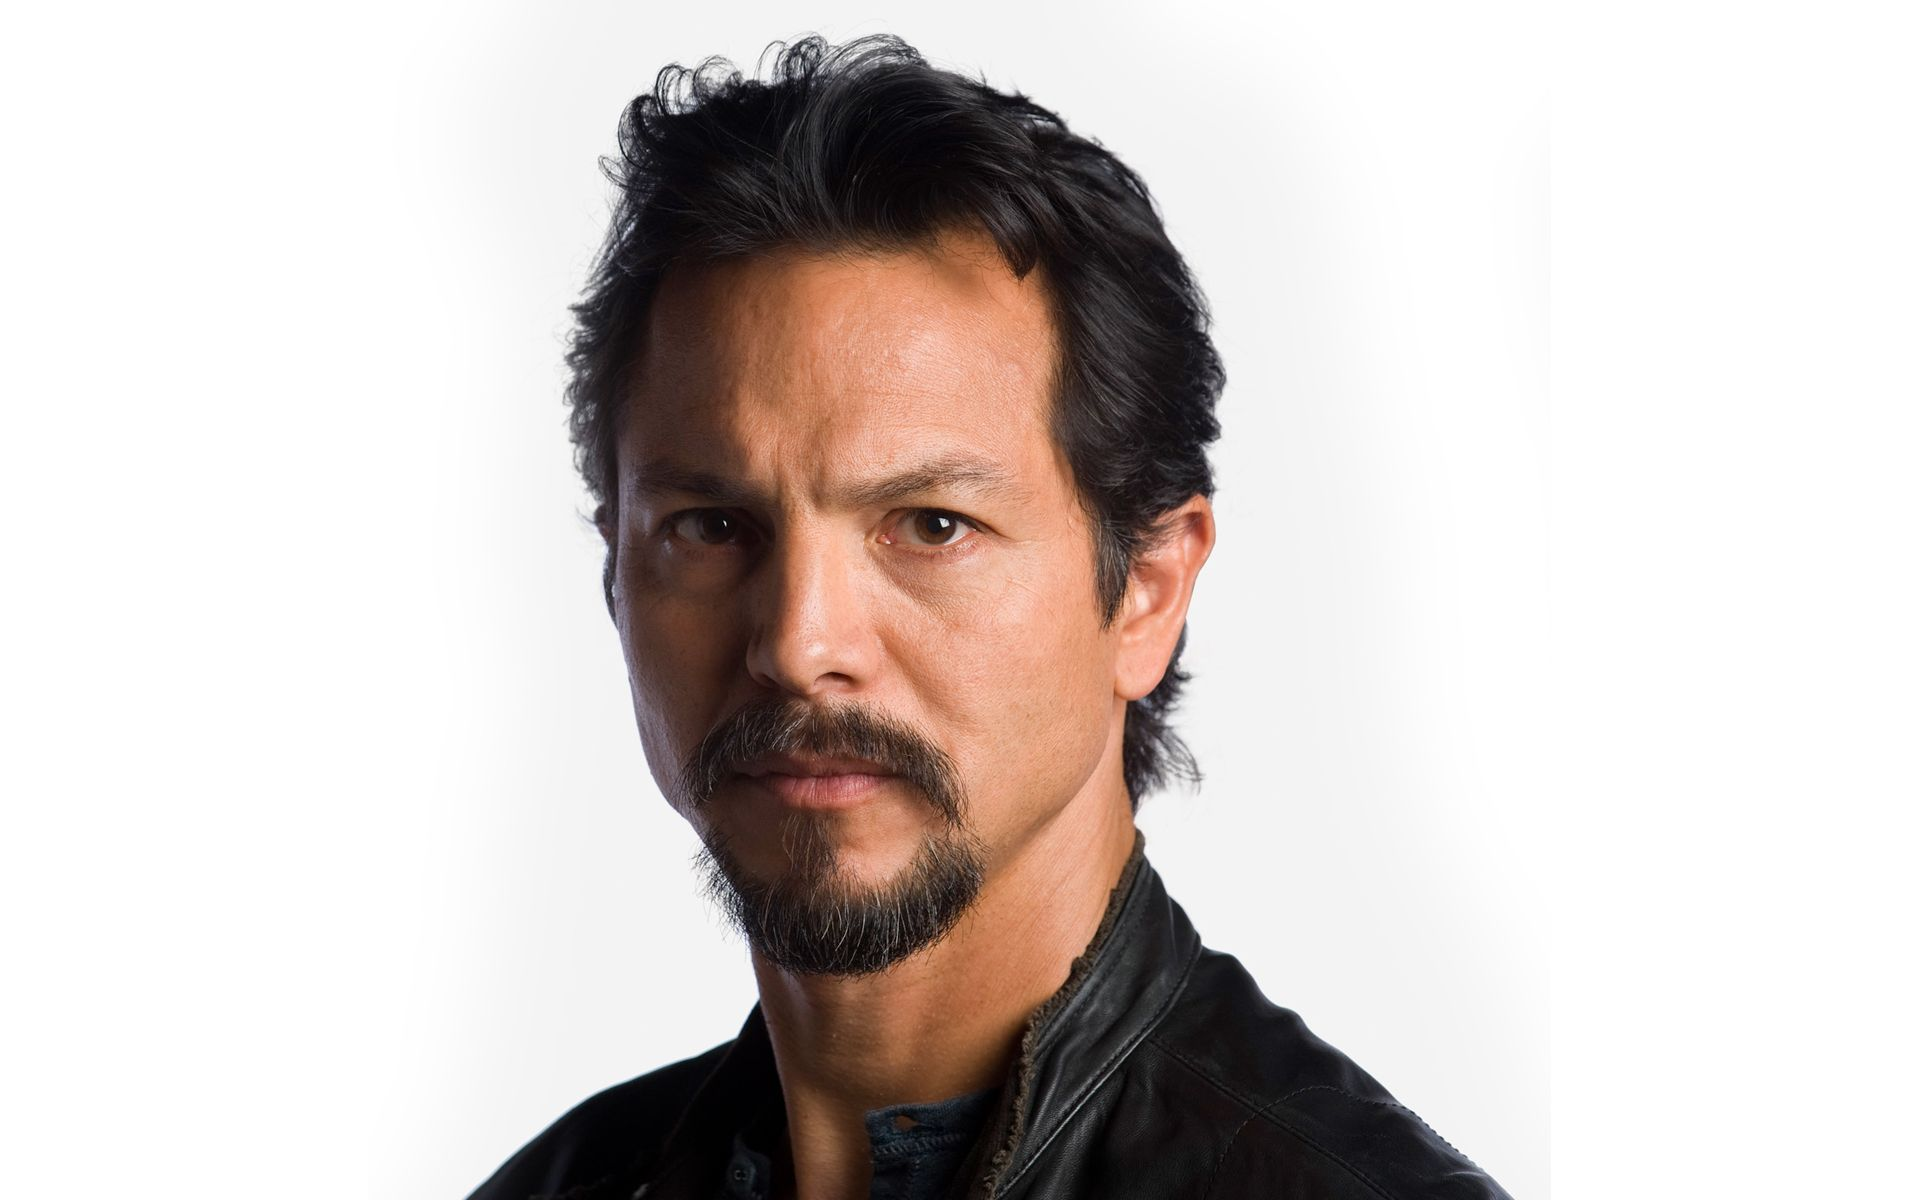 4 hd benjamin bratt wallpapers - stunning hd wallpapers and